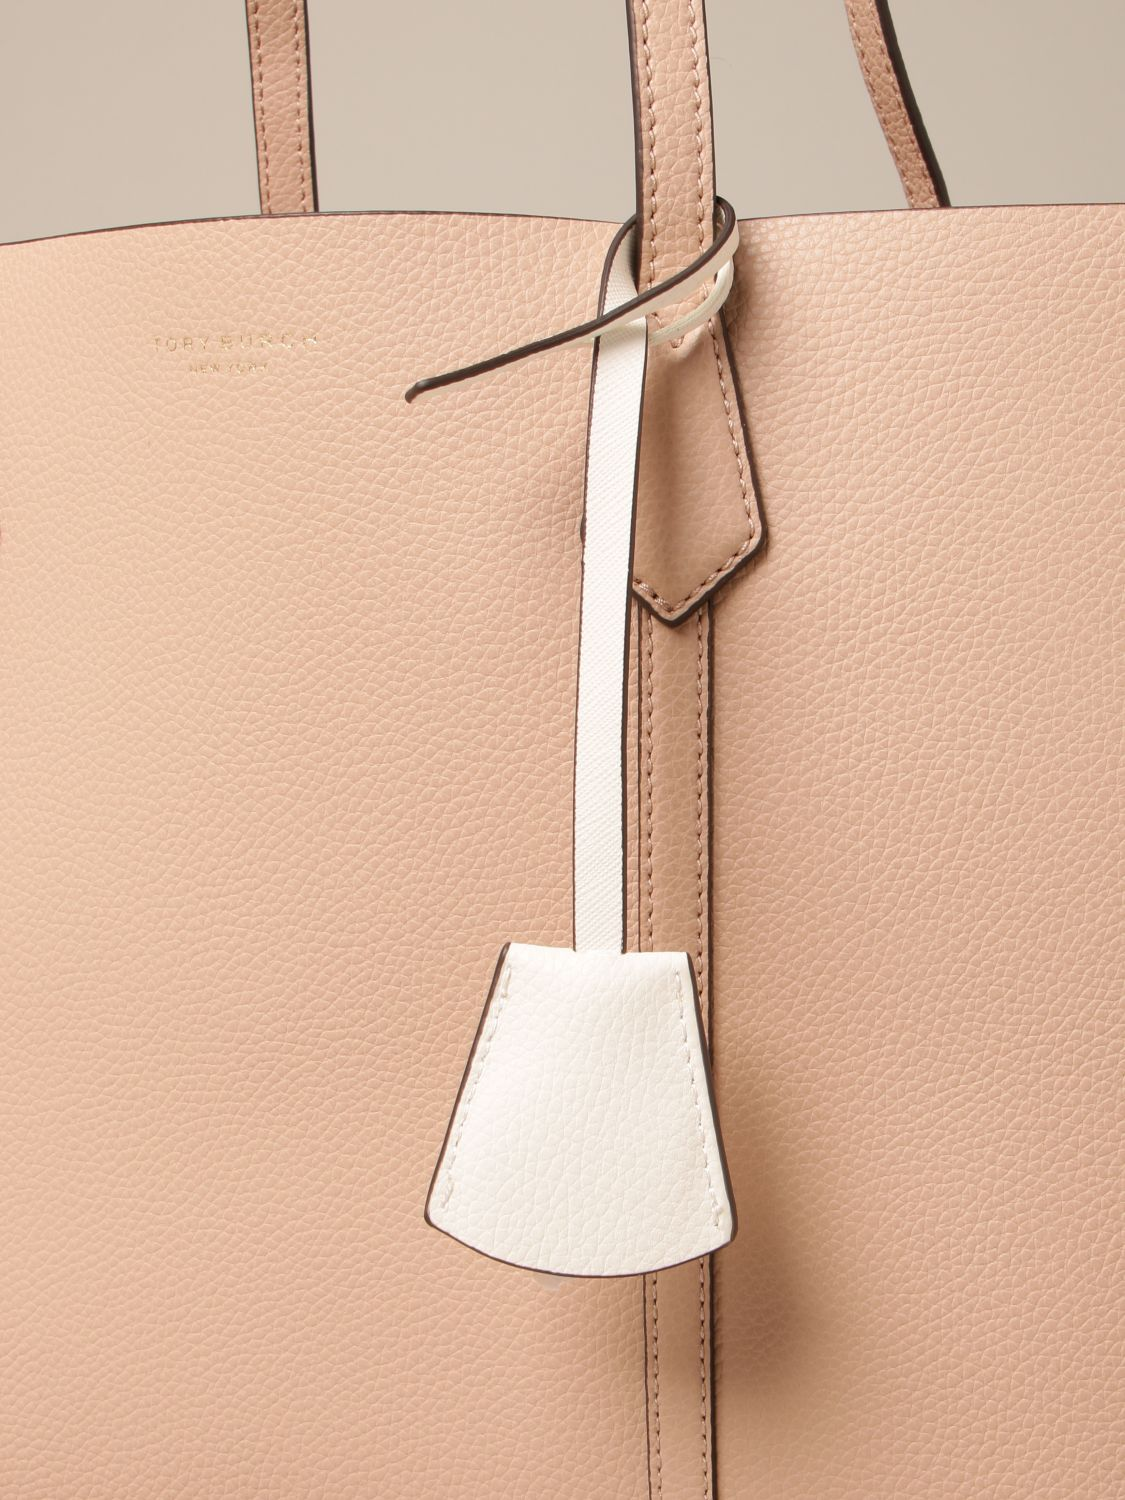 Handbag Tory Burch: Perry Tory Burch bag in textured leather pink 3